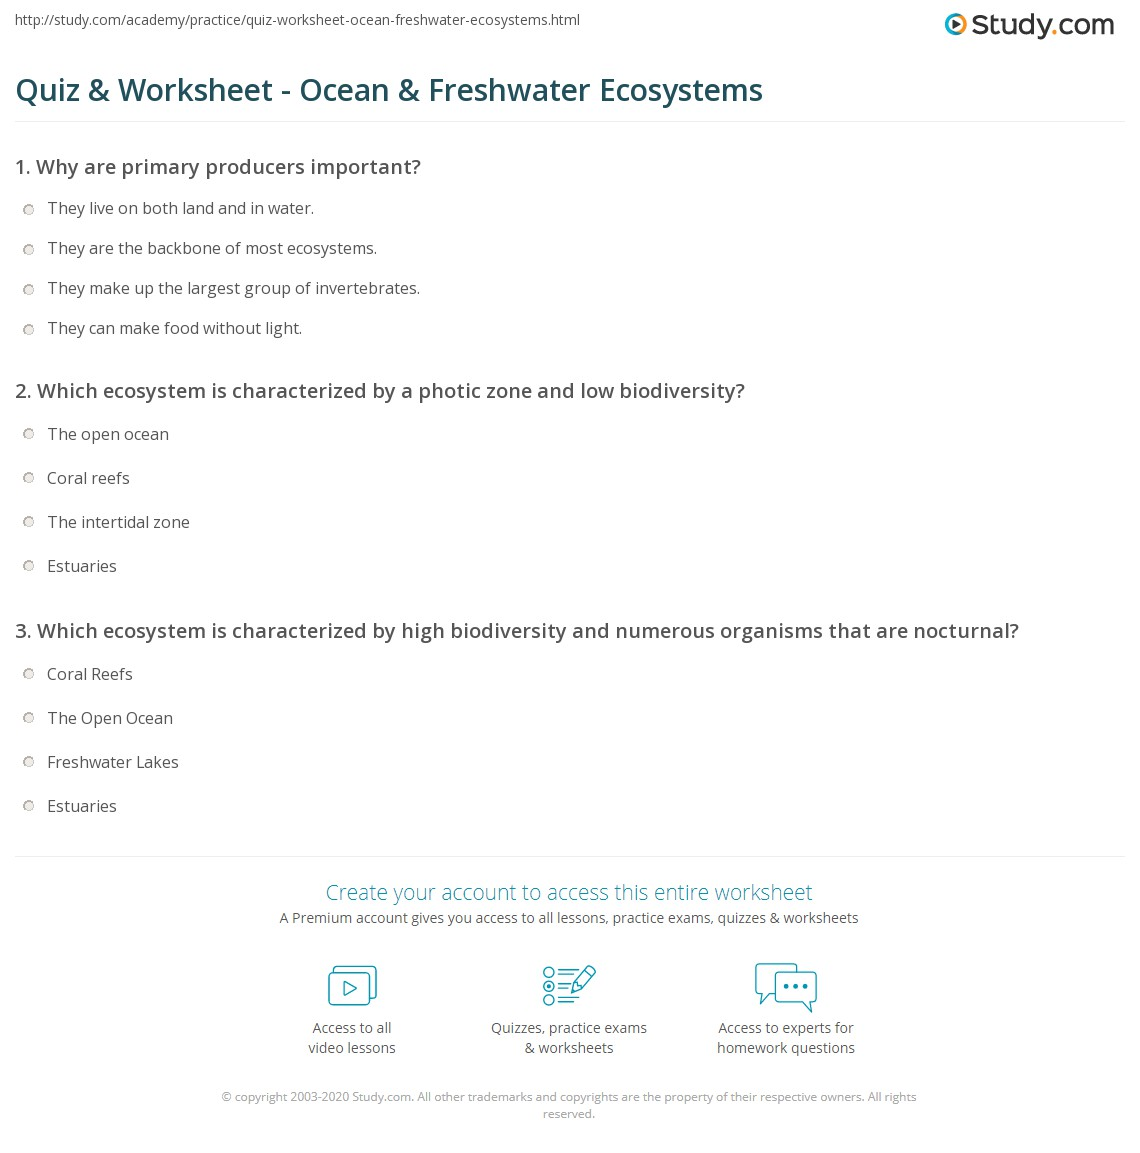 worksheet Ecosystems Worksheets quiz worksheet ocean freshwater ecosystems study com print of oceans and biological diversity water worksheet